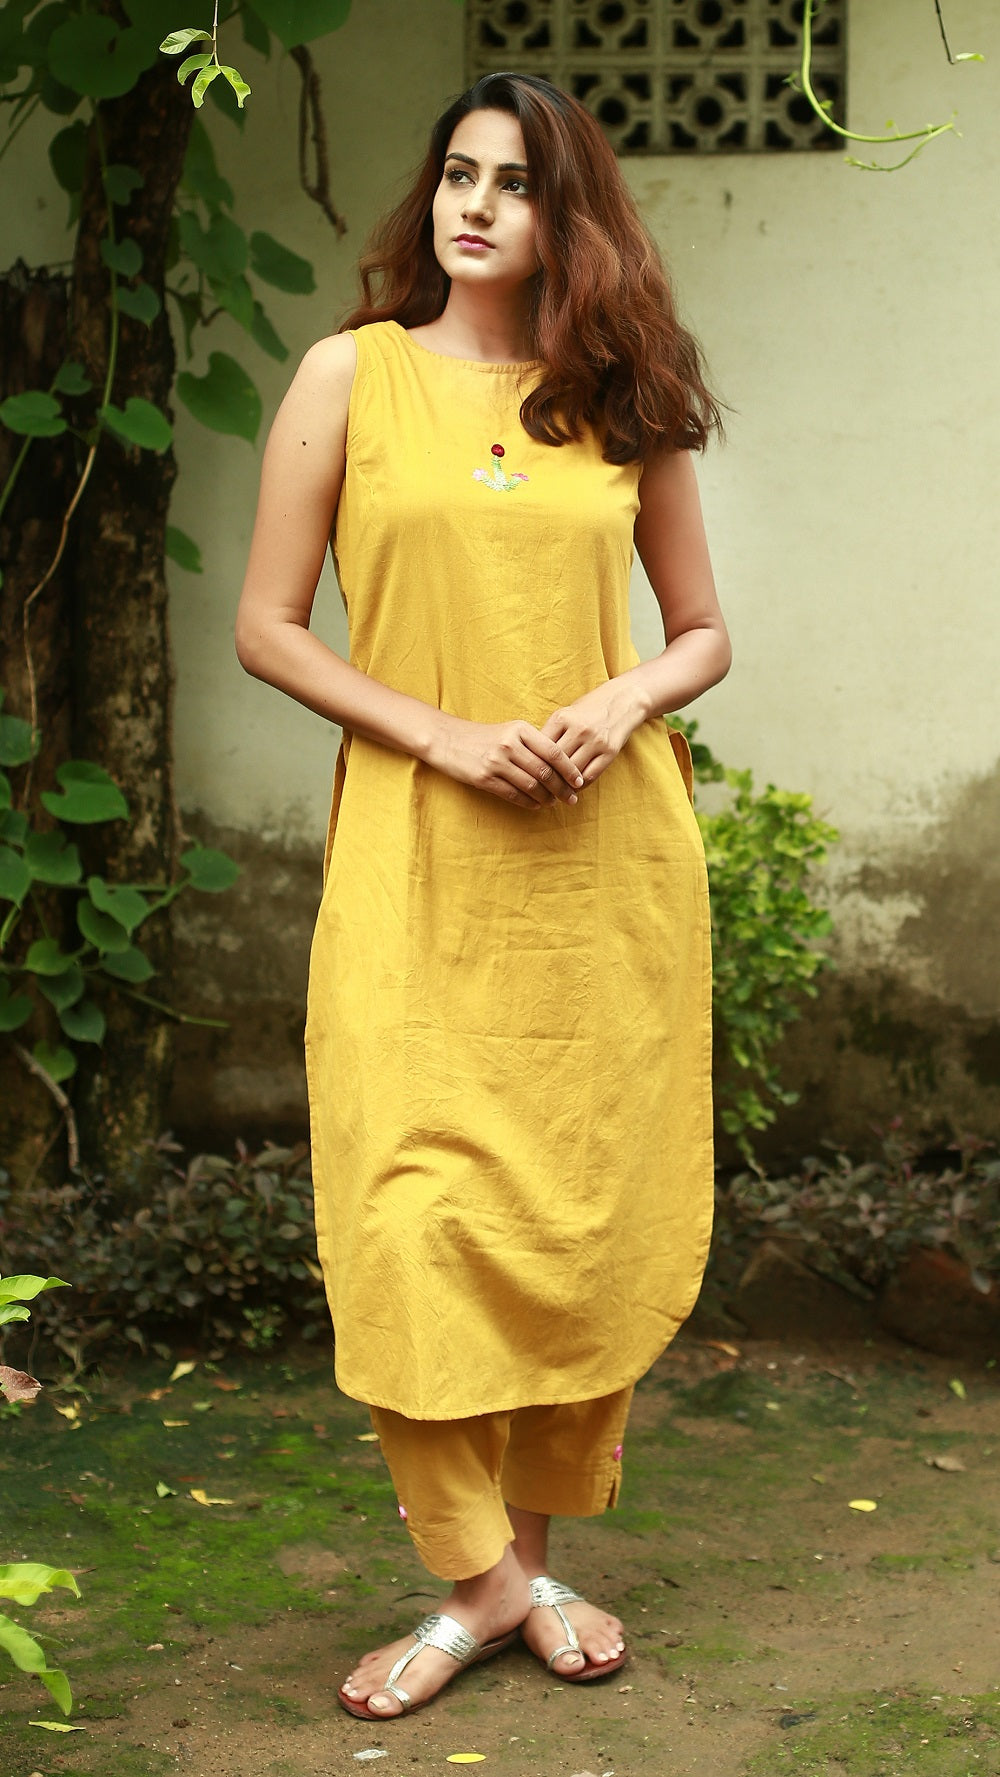 Flora tunic: Earthy yellow